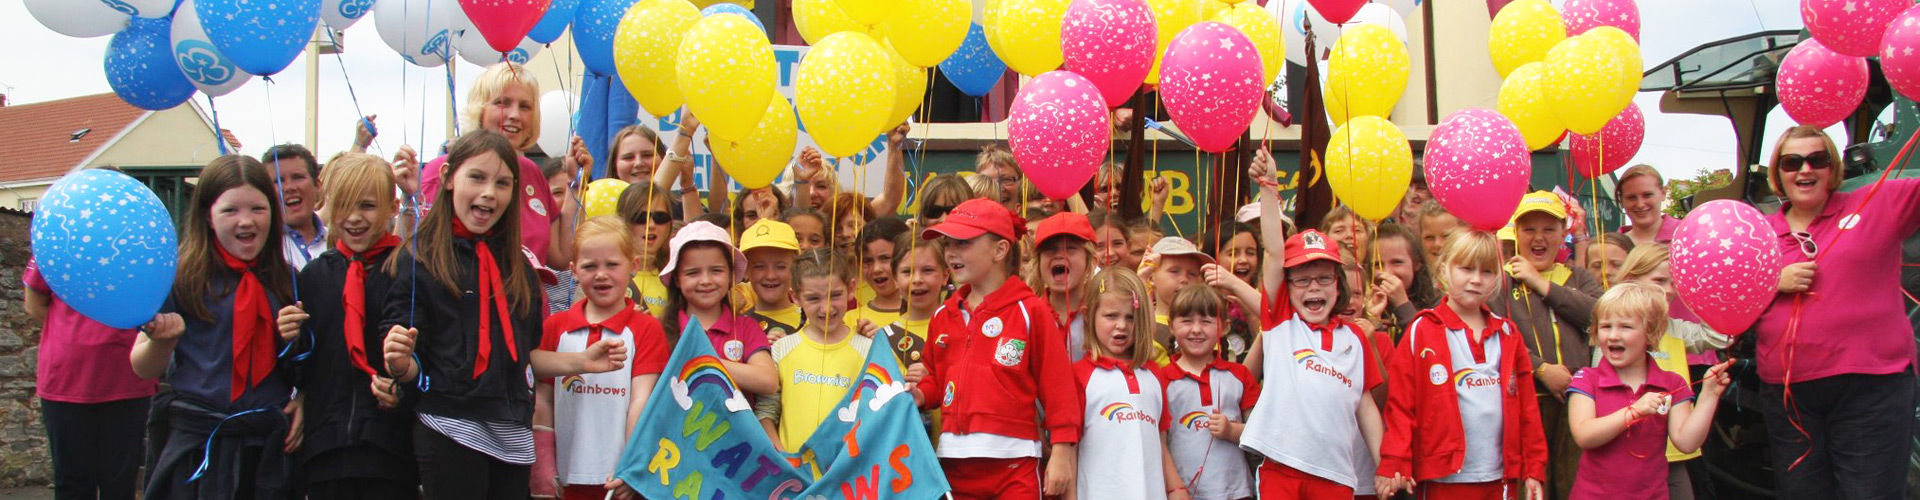 The Watchet Rainbows all holding balloons and cheering